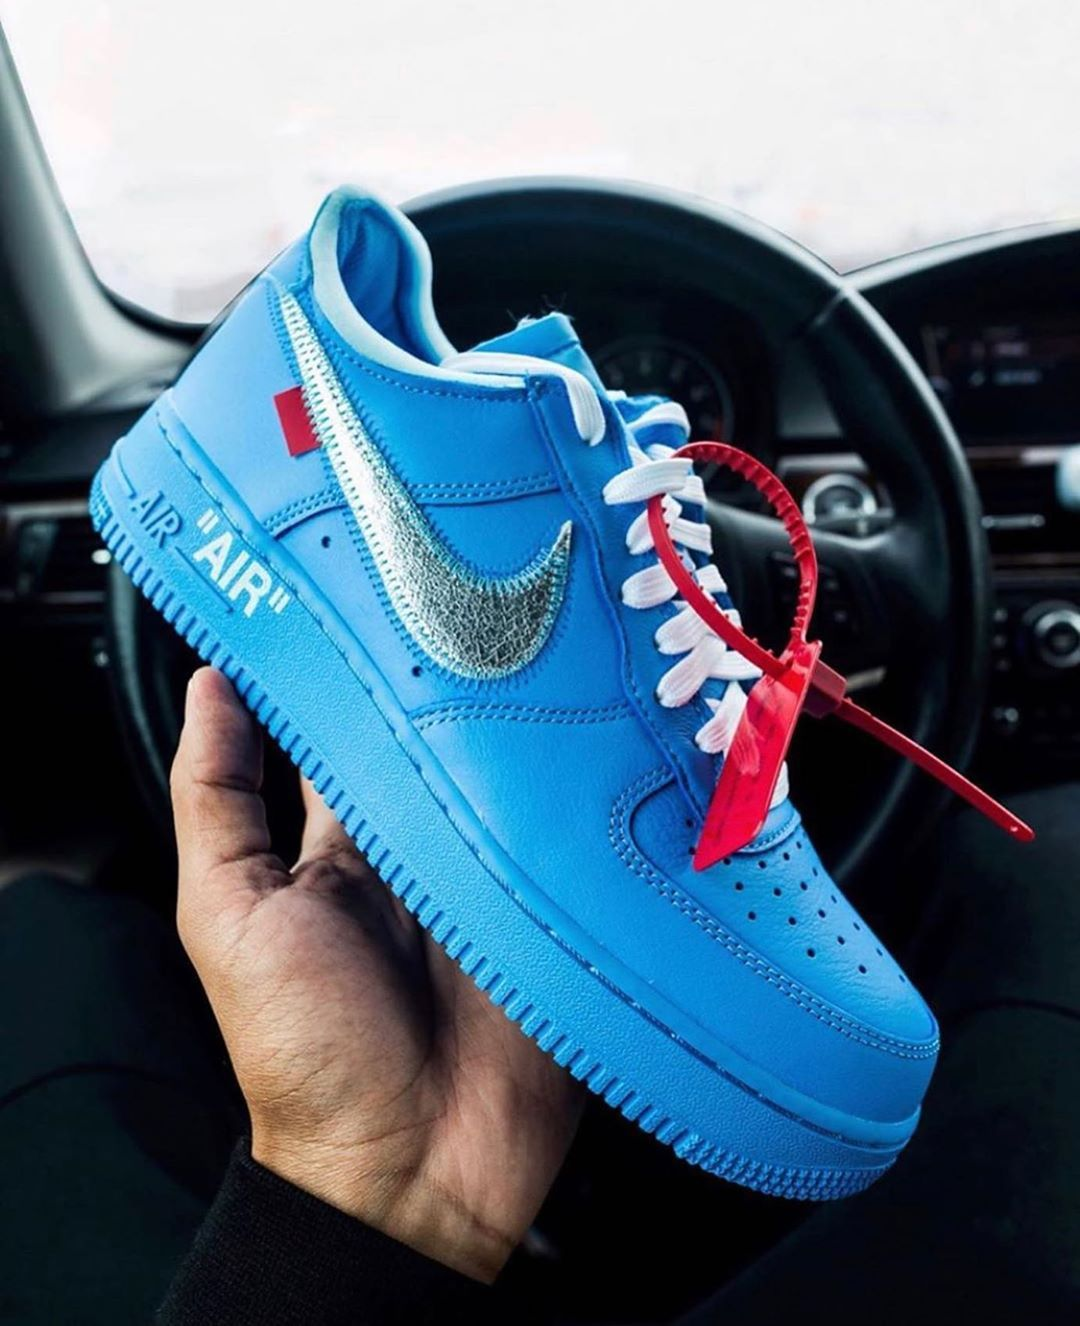 How to Cop the Virgil Abloh x MCA Chicago x Nike Air Force 1